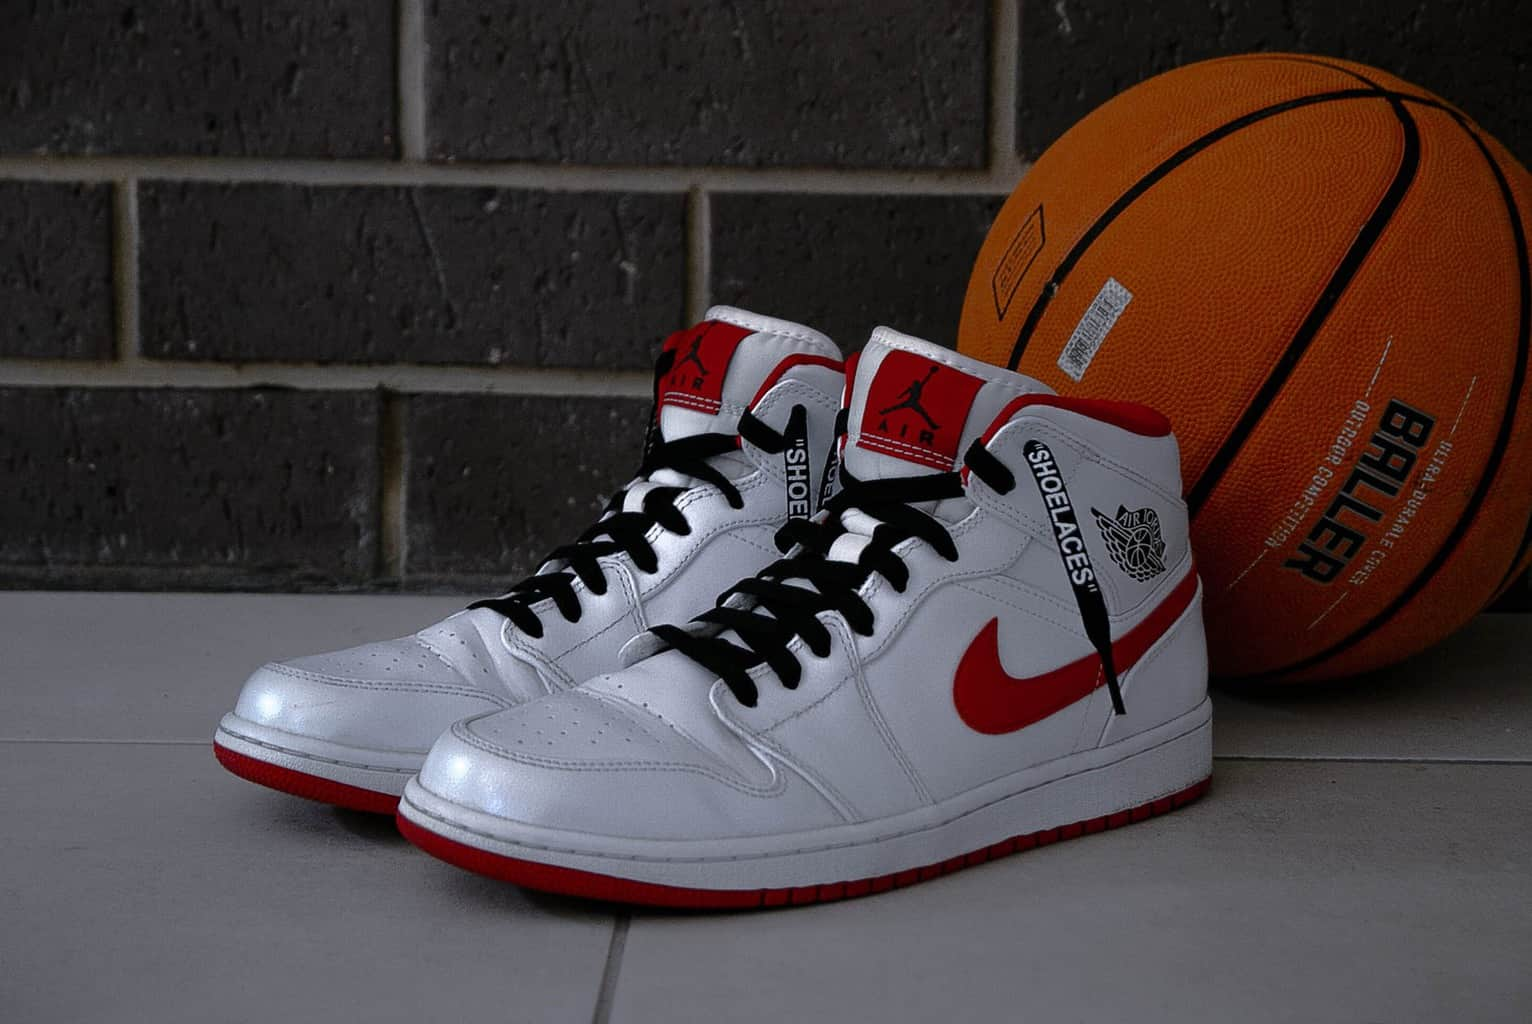 A pair of white Nike basketball shoes beside a ball